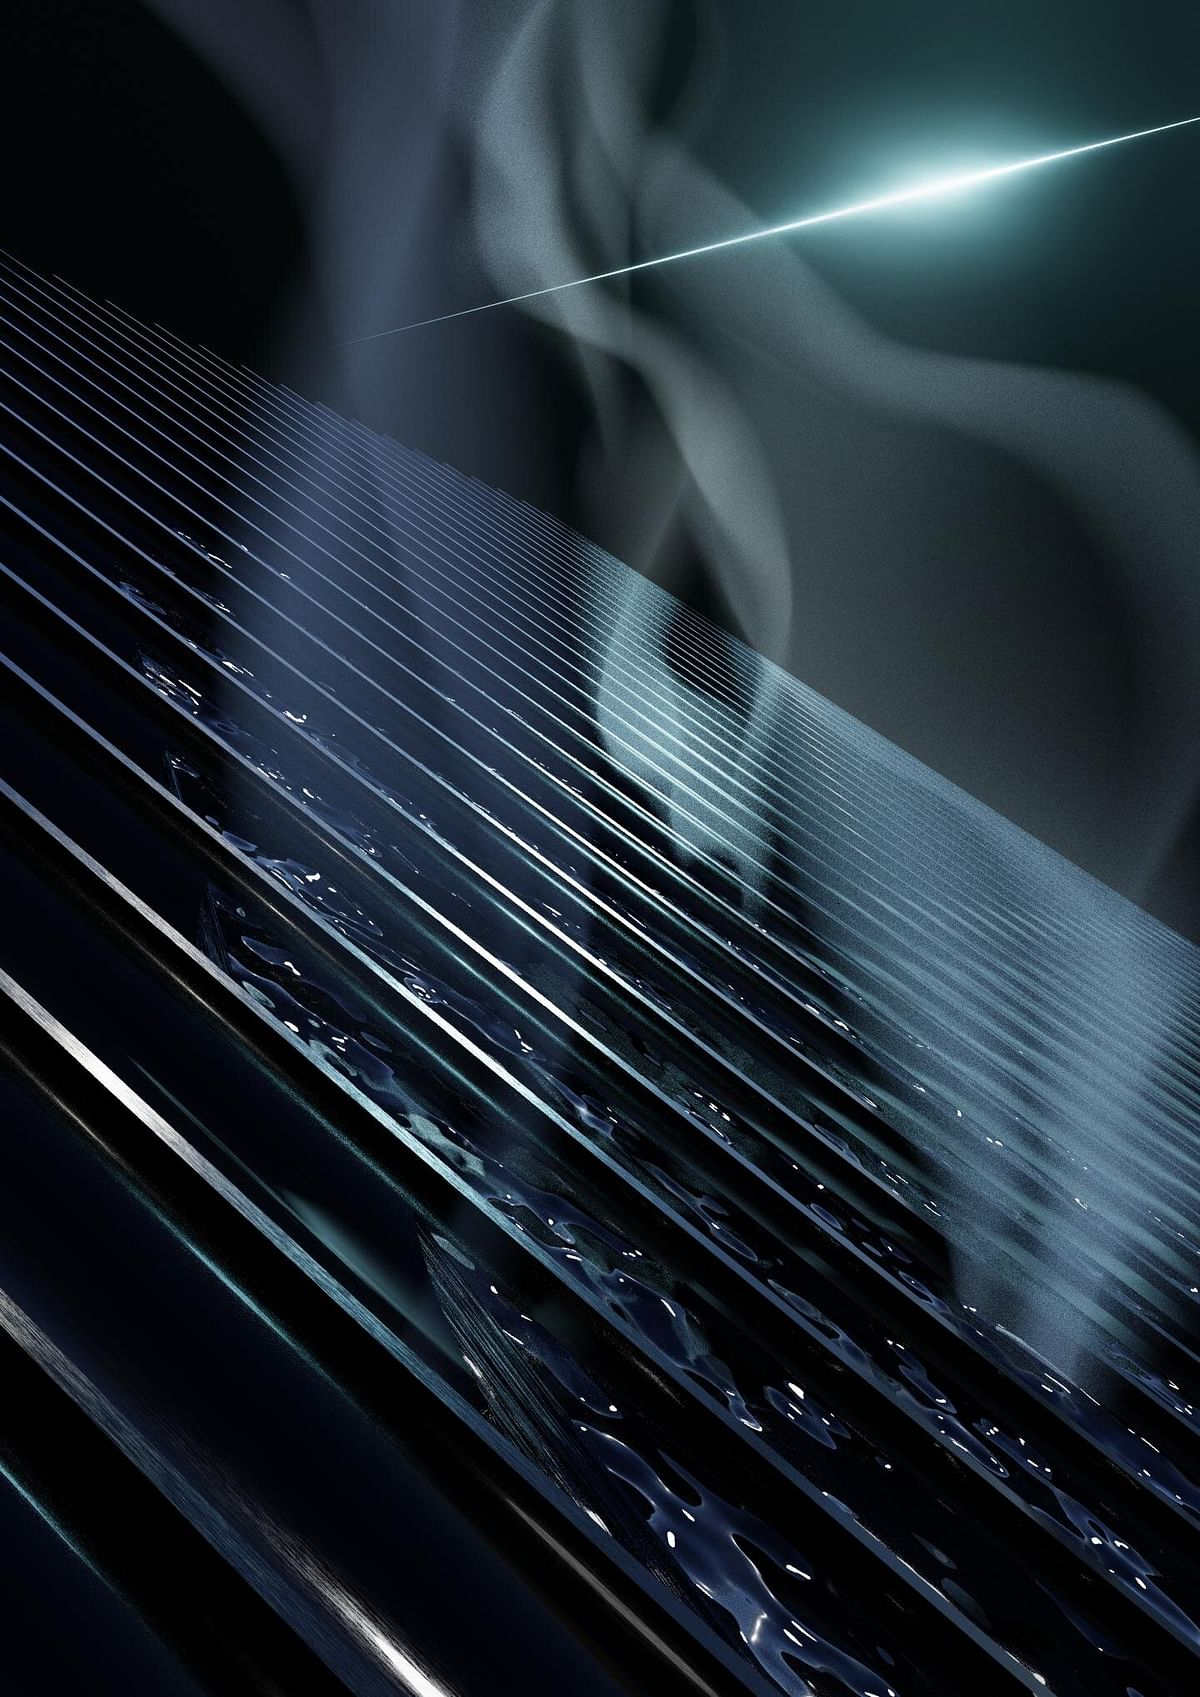 The researchers developed a laser processing technology that turns regular aluminum pitch black, making it highly absorptive, as well as super-wicking. They then applied this super absorptive and super-wicking aluminum for solar water purification.